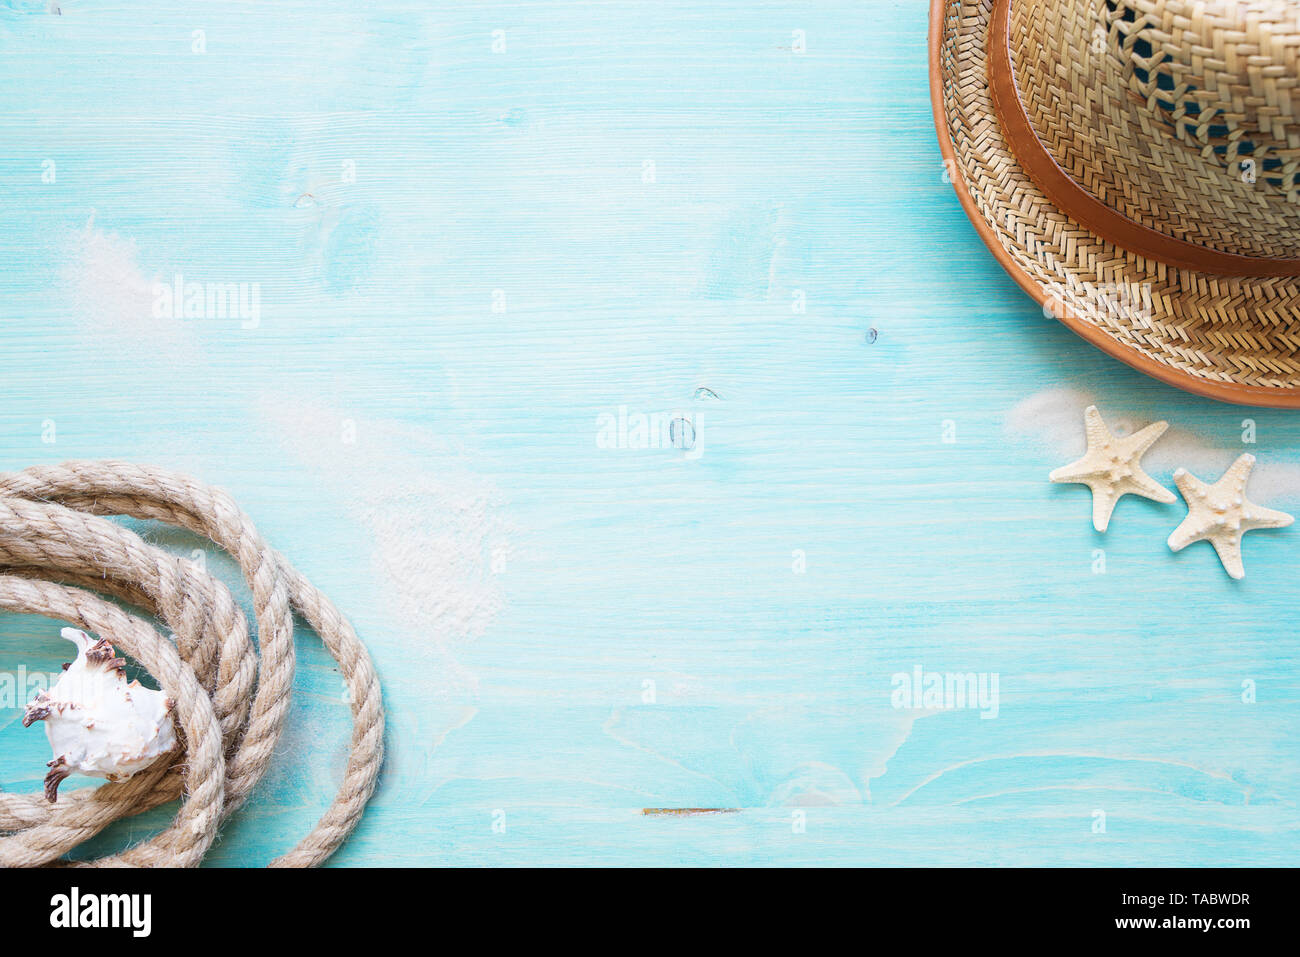 Rough hemp rope, shell, starfishes, white sea sand and straw hat are on the background of blue faded wooden deck. Marine concept - Stock Image